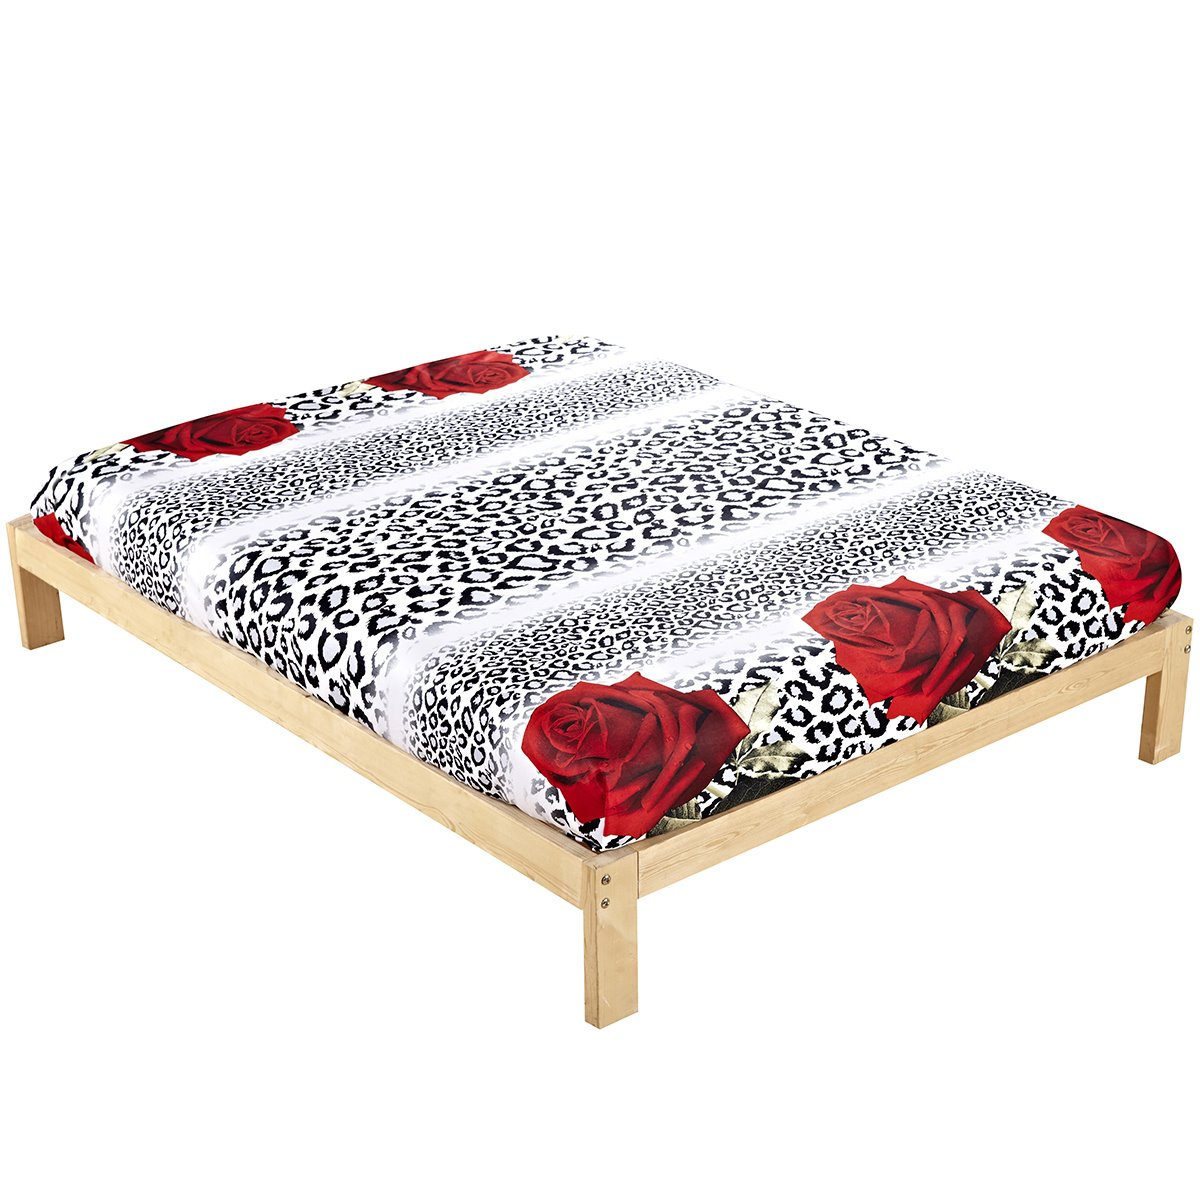 Sexy Red Rose and Leopard Print Cotton Fitted Sheet